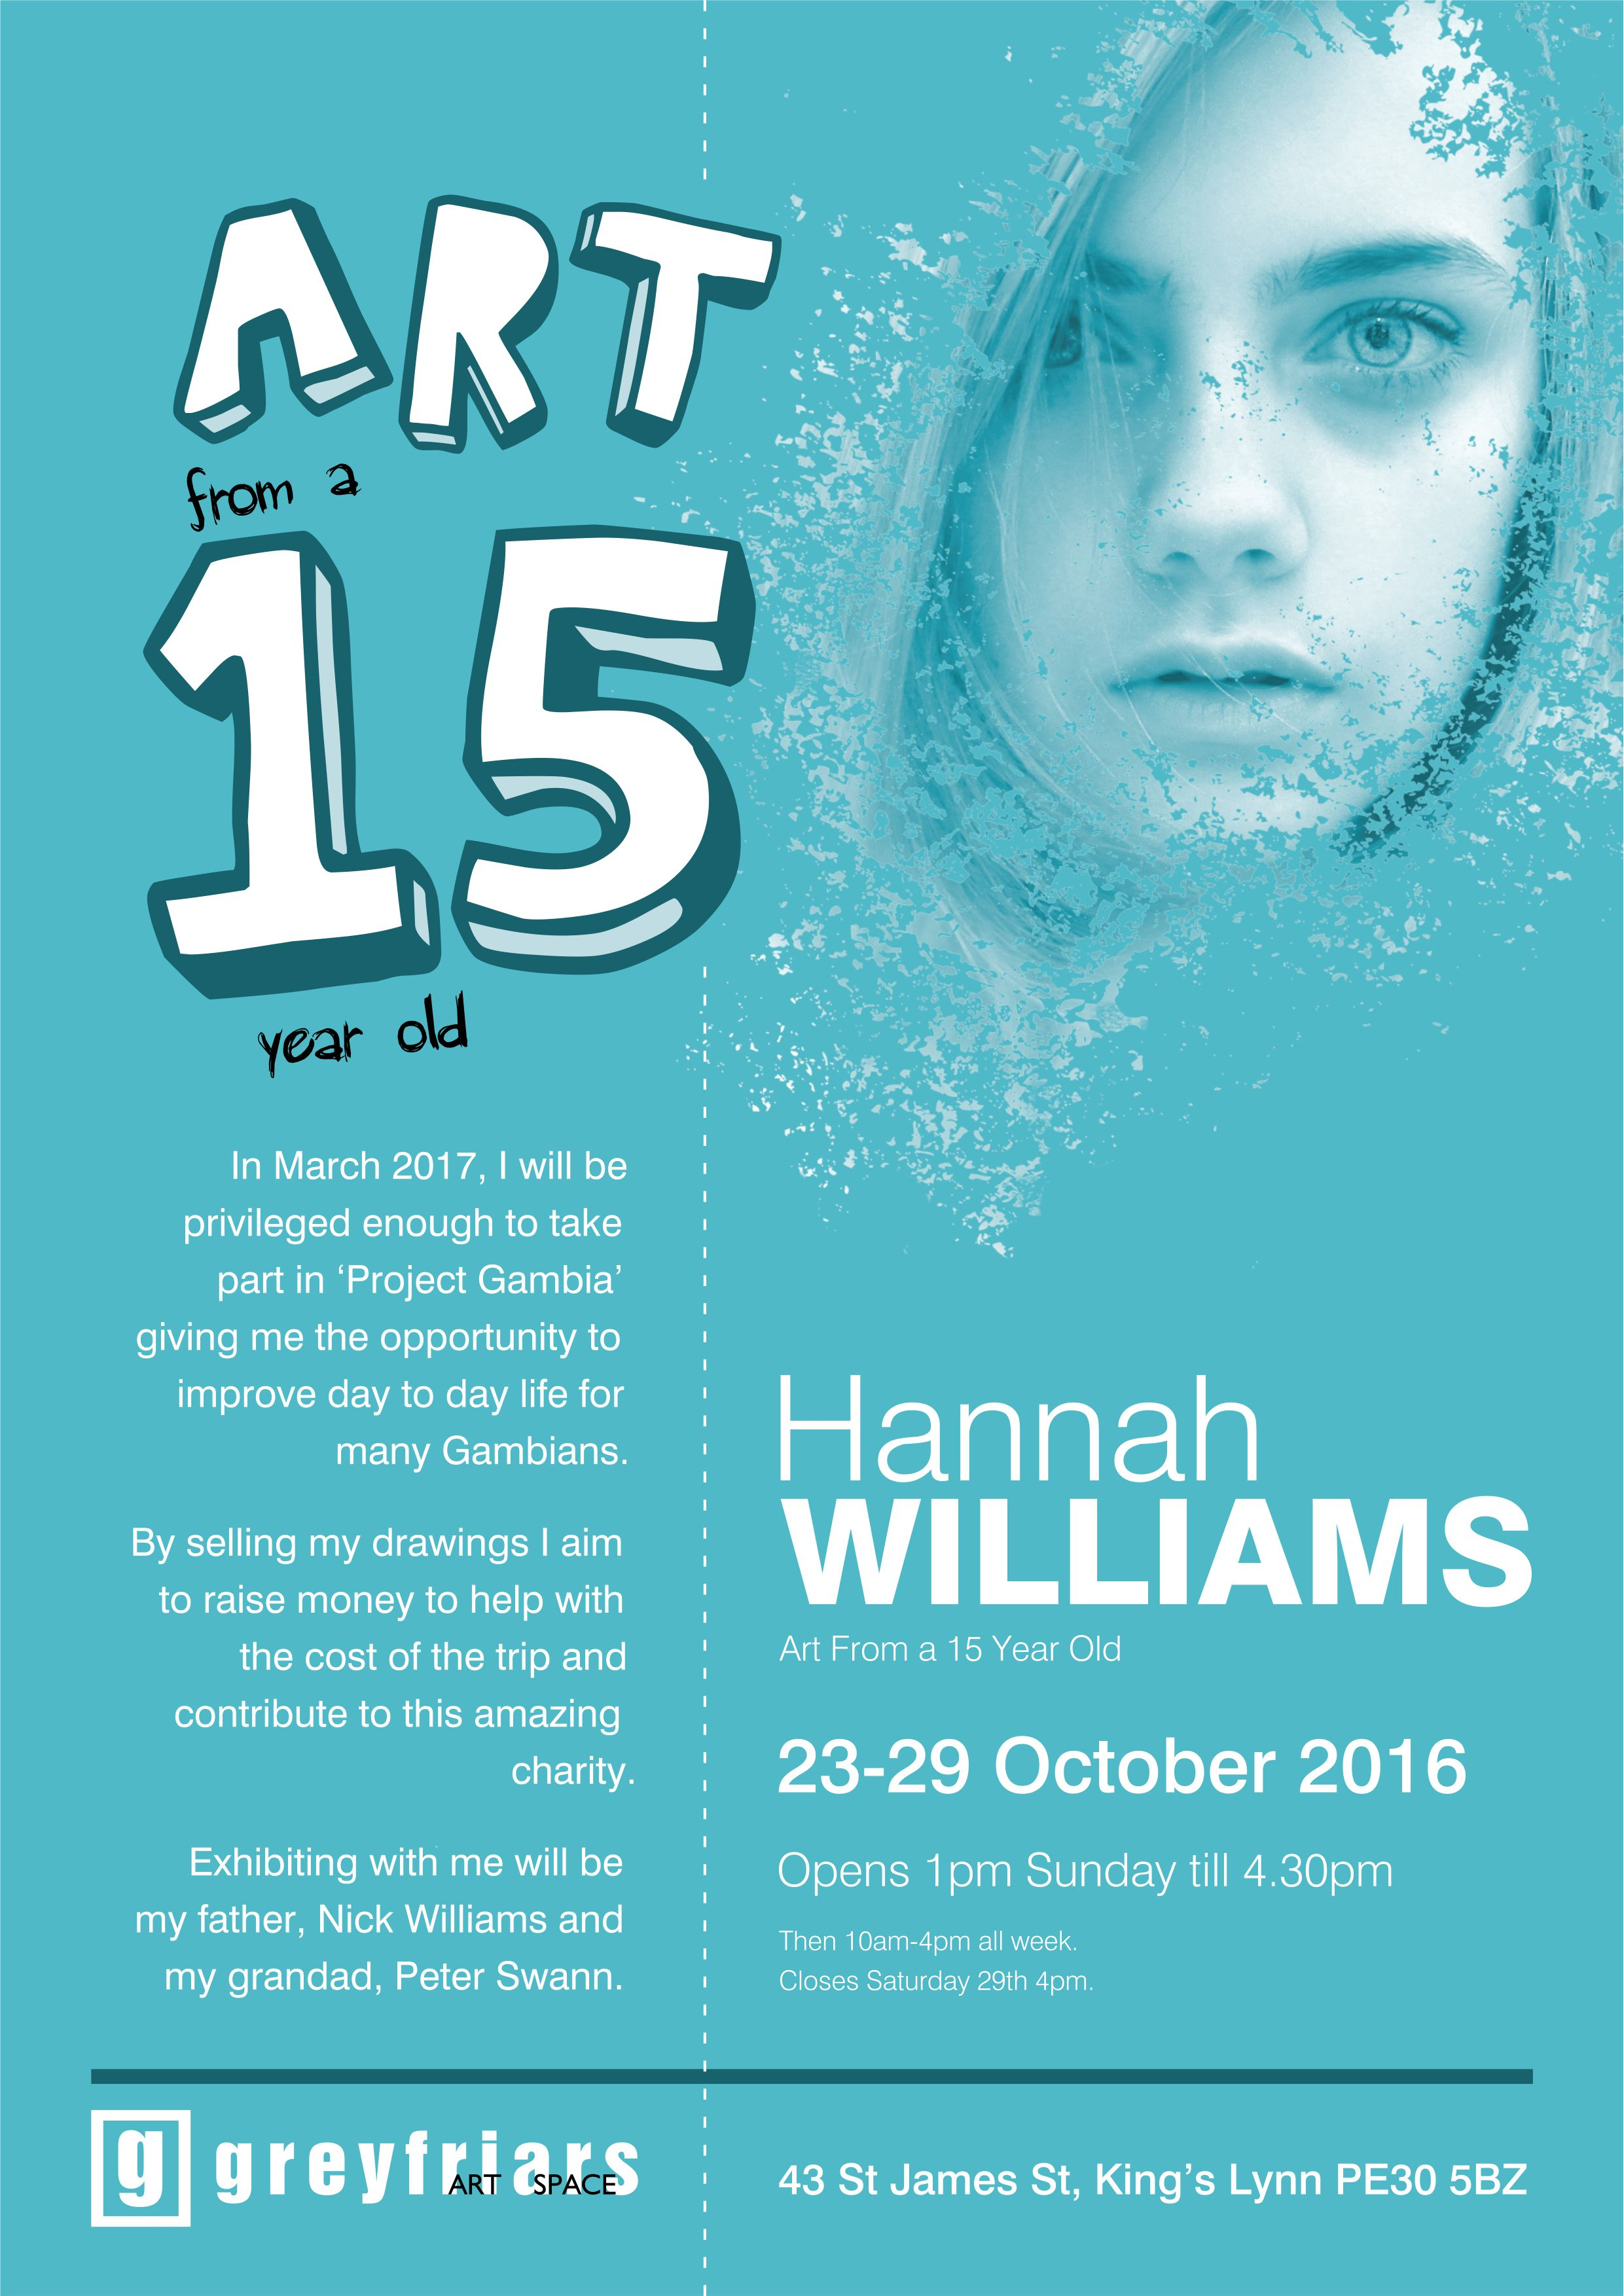 hannah-williams-exhibition-poster